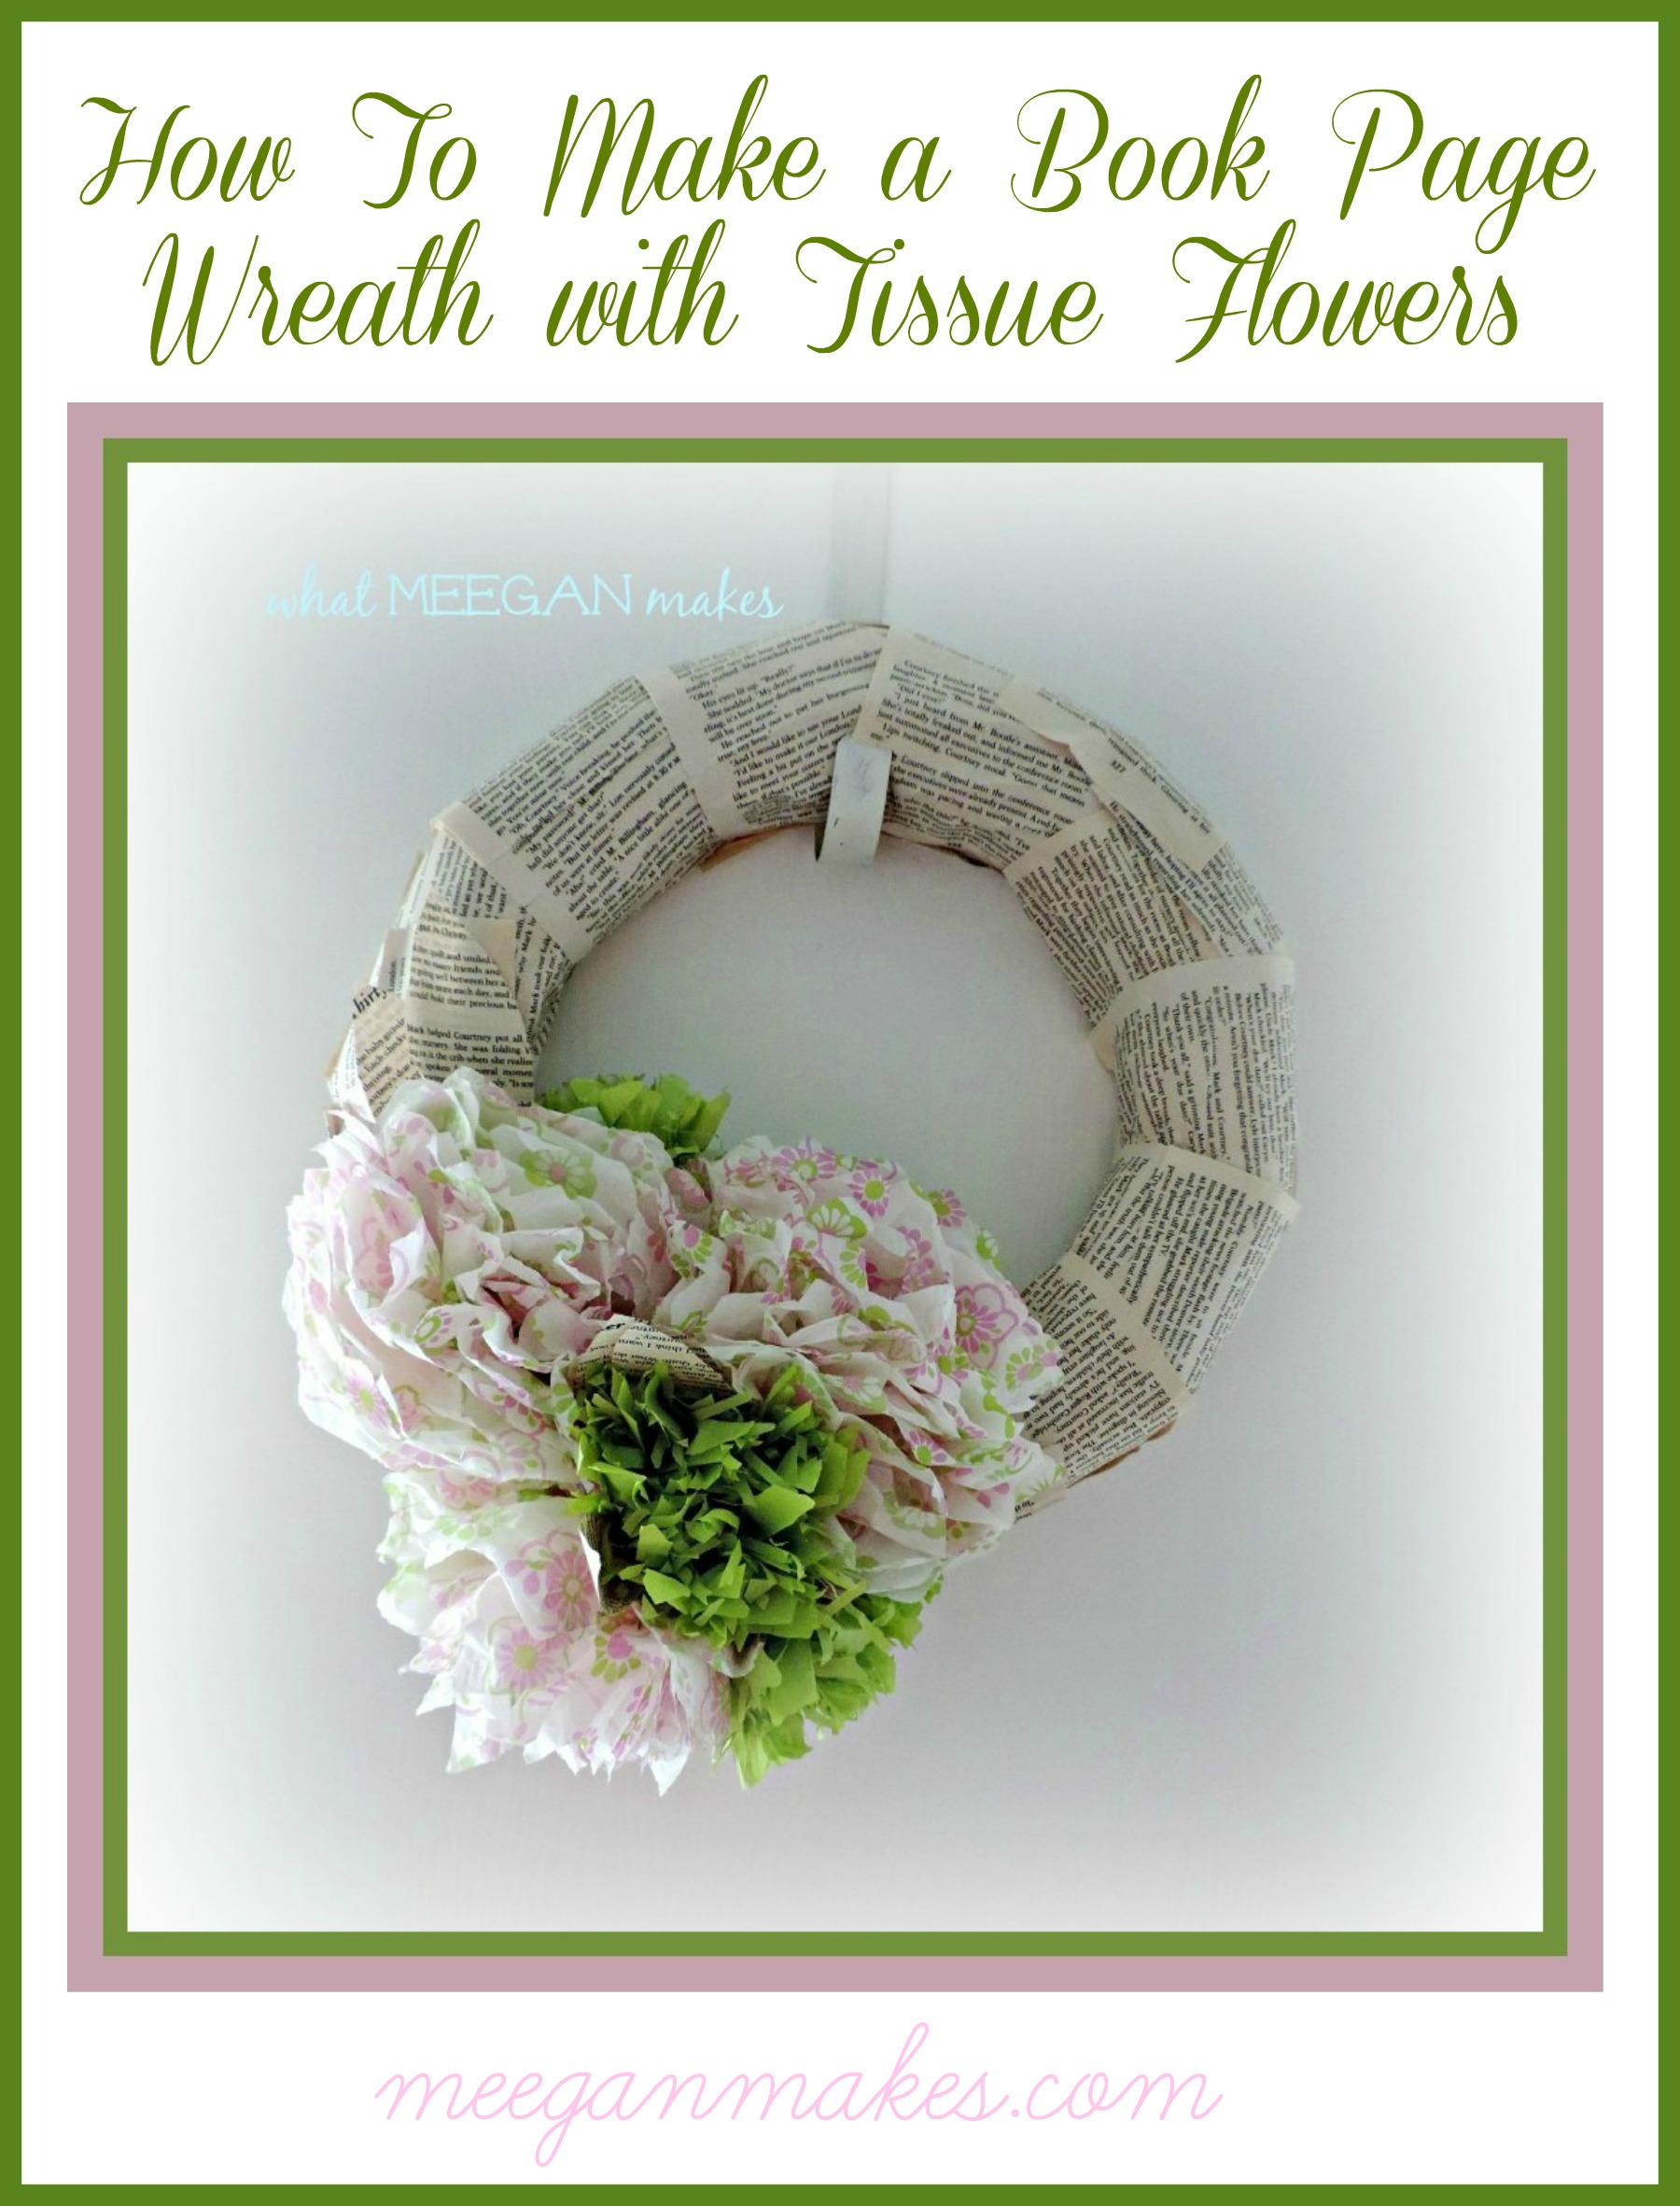 How To Make A Book Page Wreath with Tissue Flowers